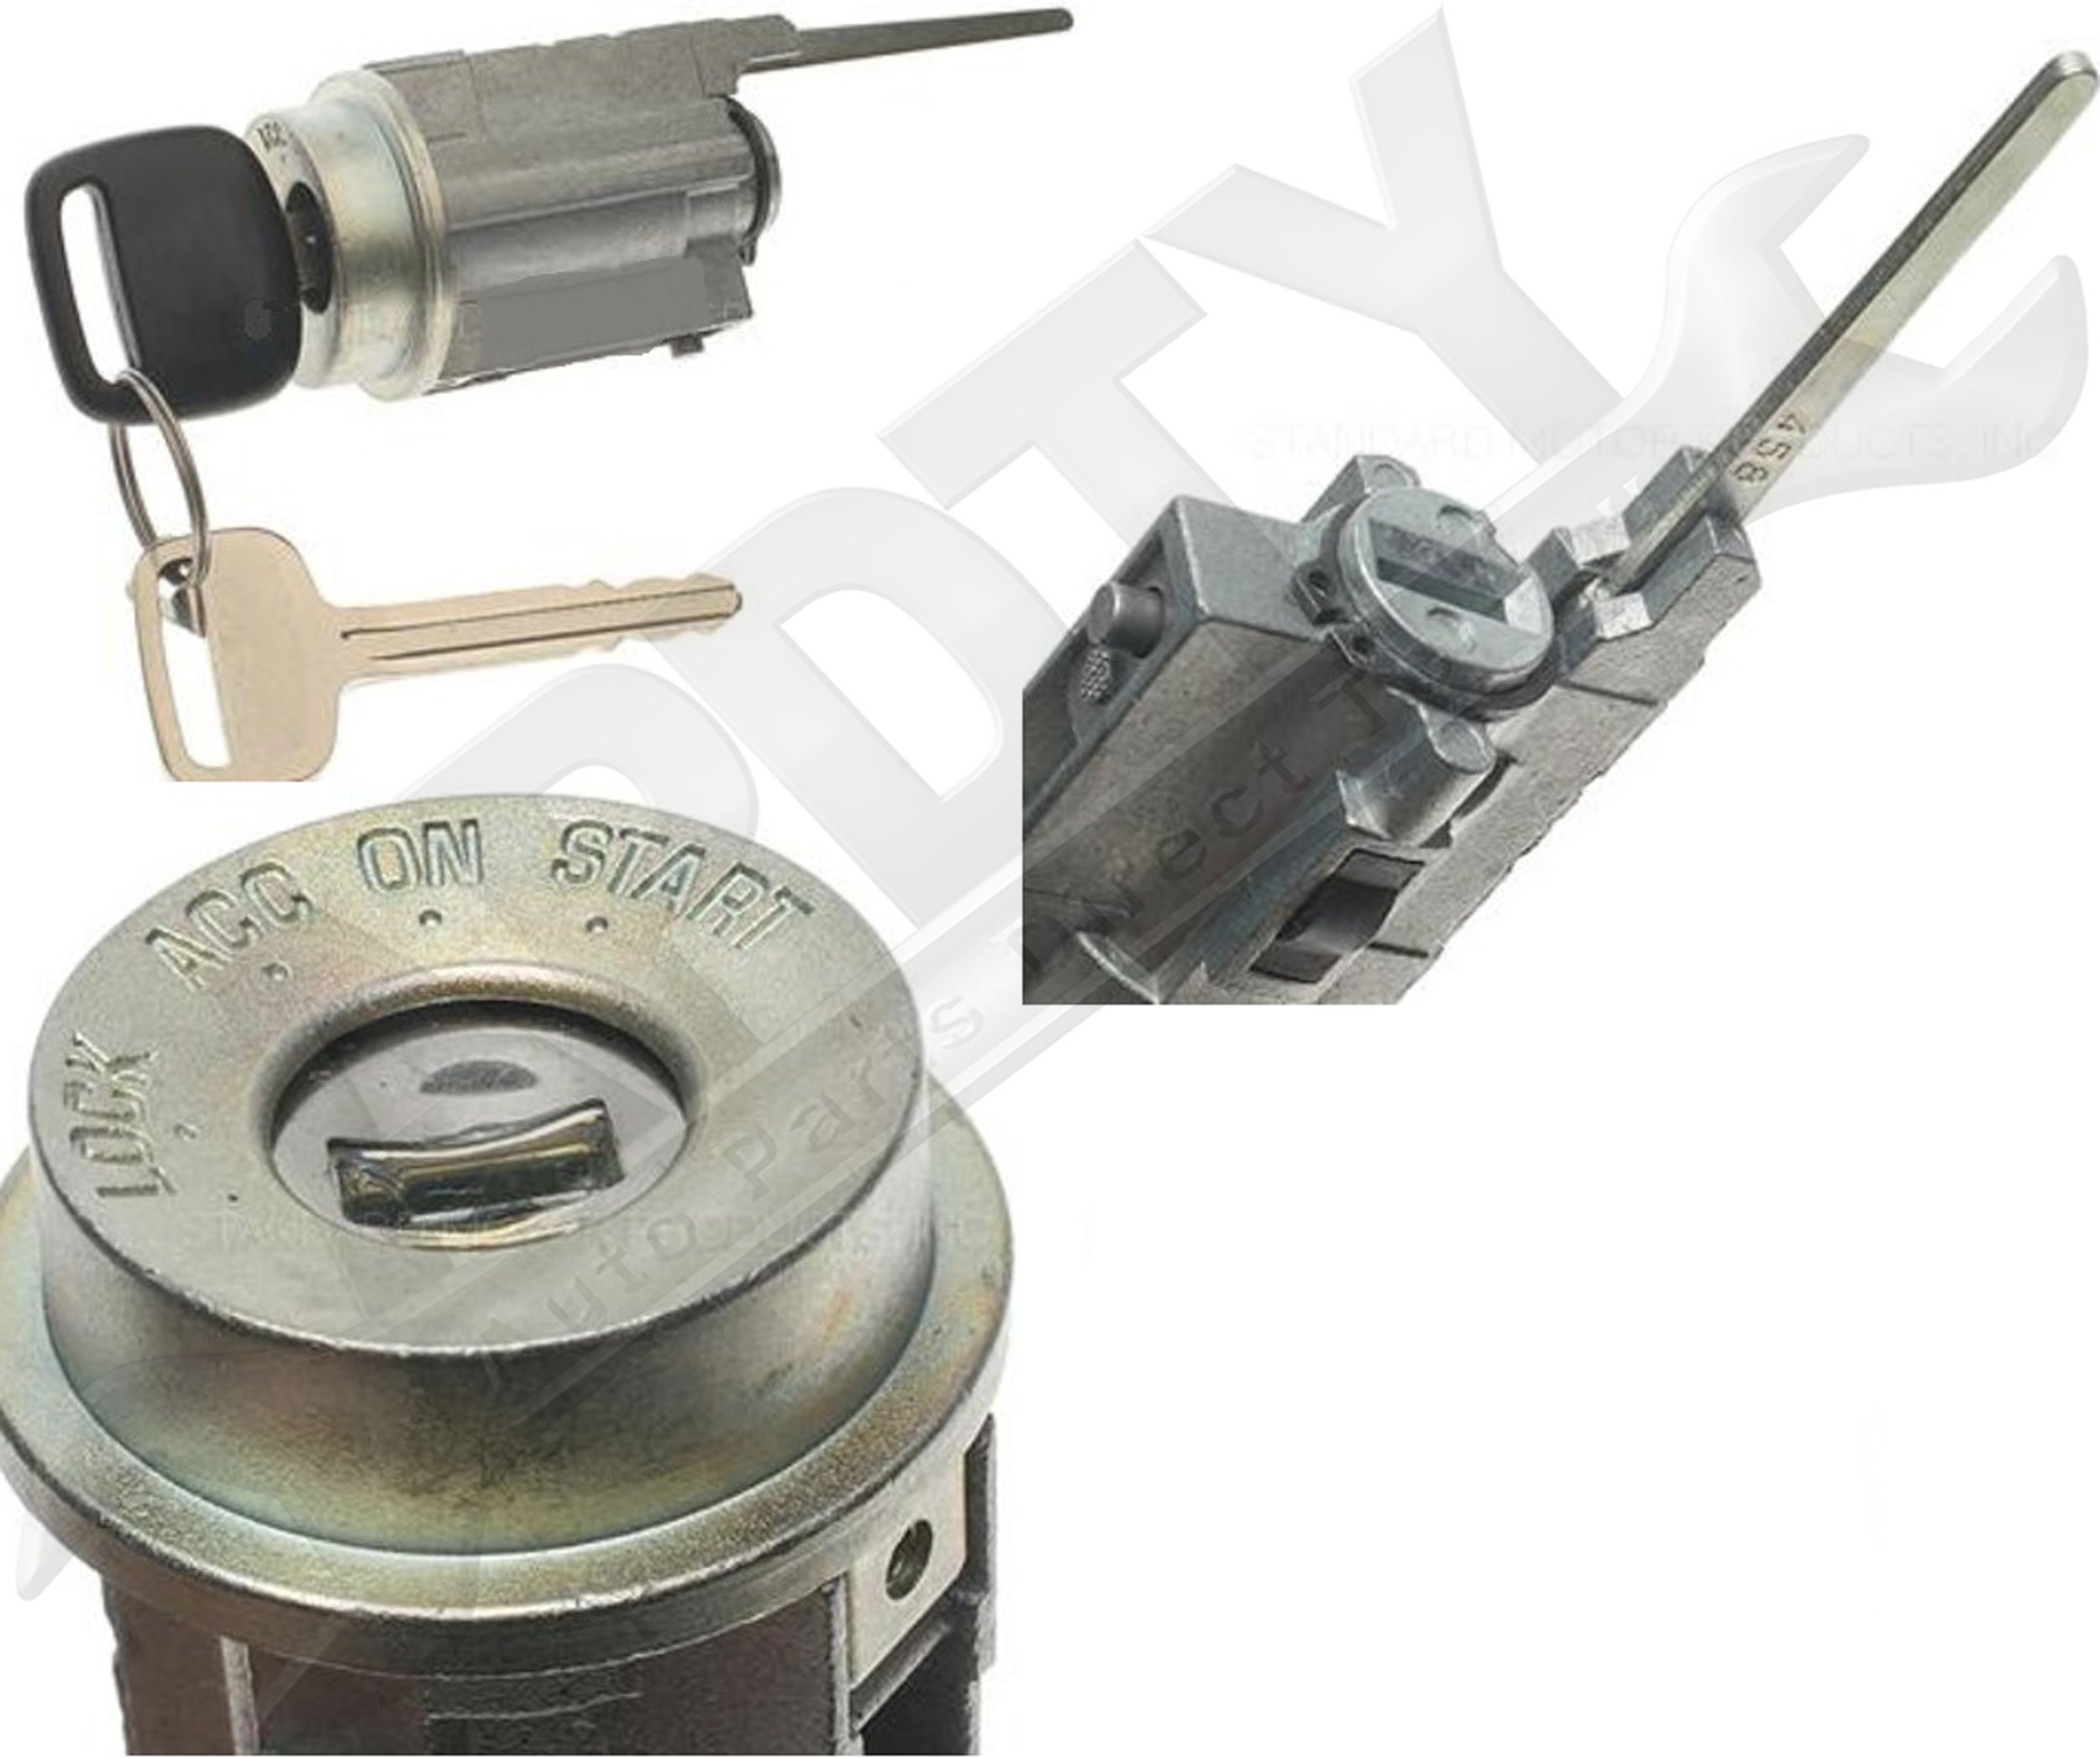 cheap toyota wheel lock key, find toyota wheel lock key deals onget quotations · apdty 112911 ignition lock cylinder with keys fits 1995 2003 tacoma 1996 2002 4runner